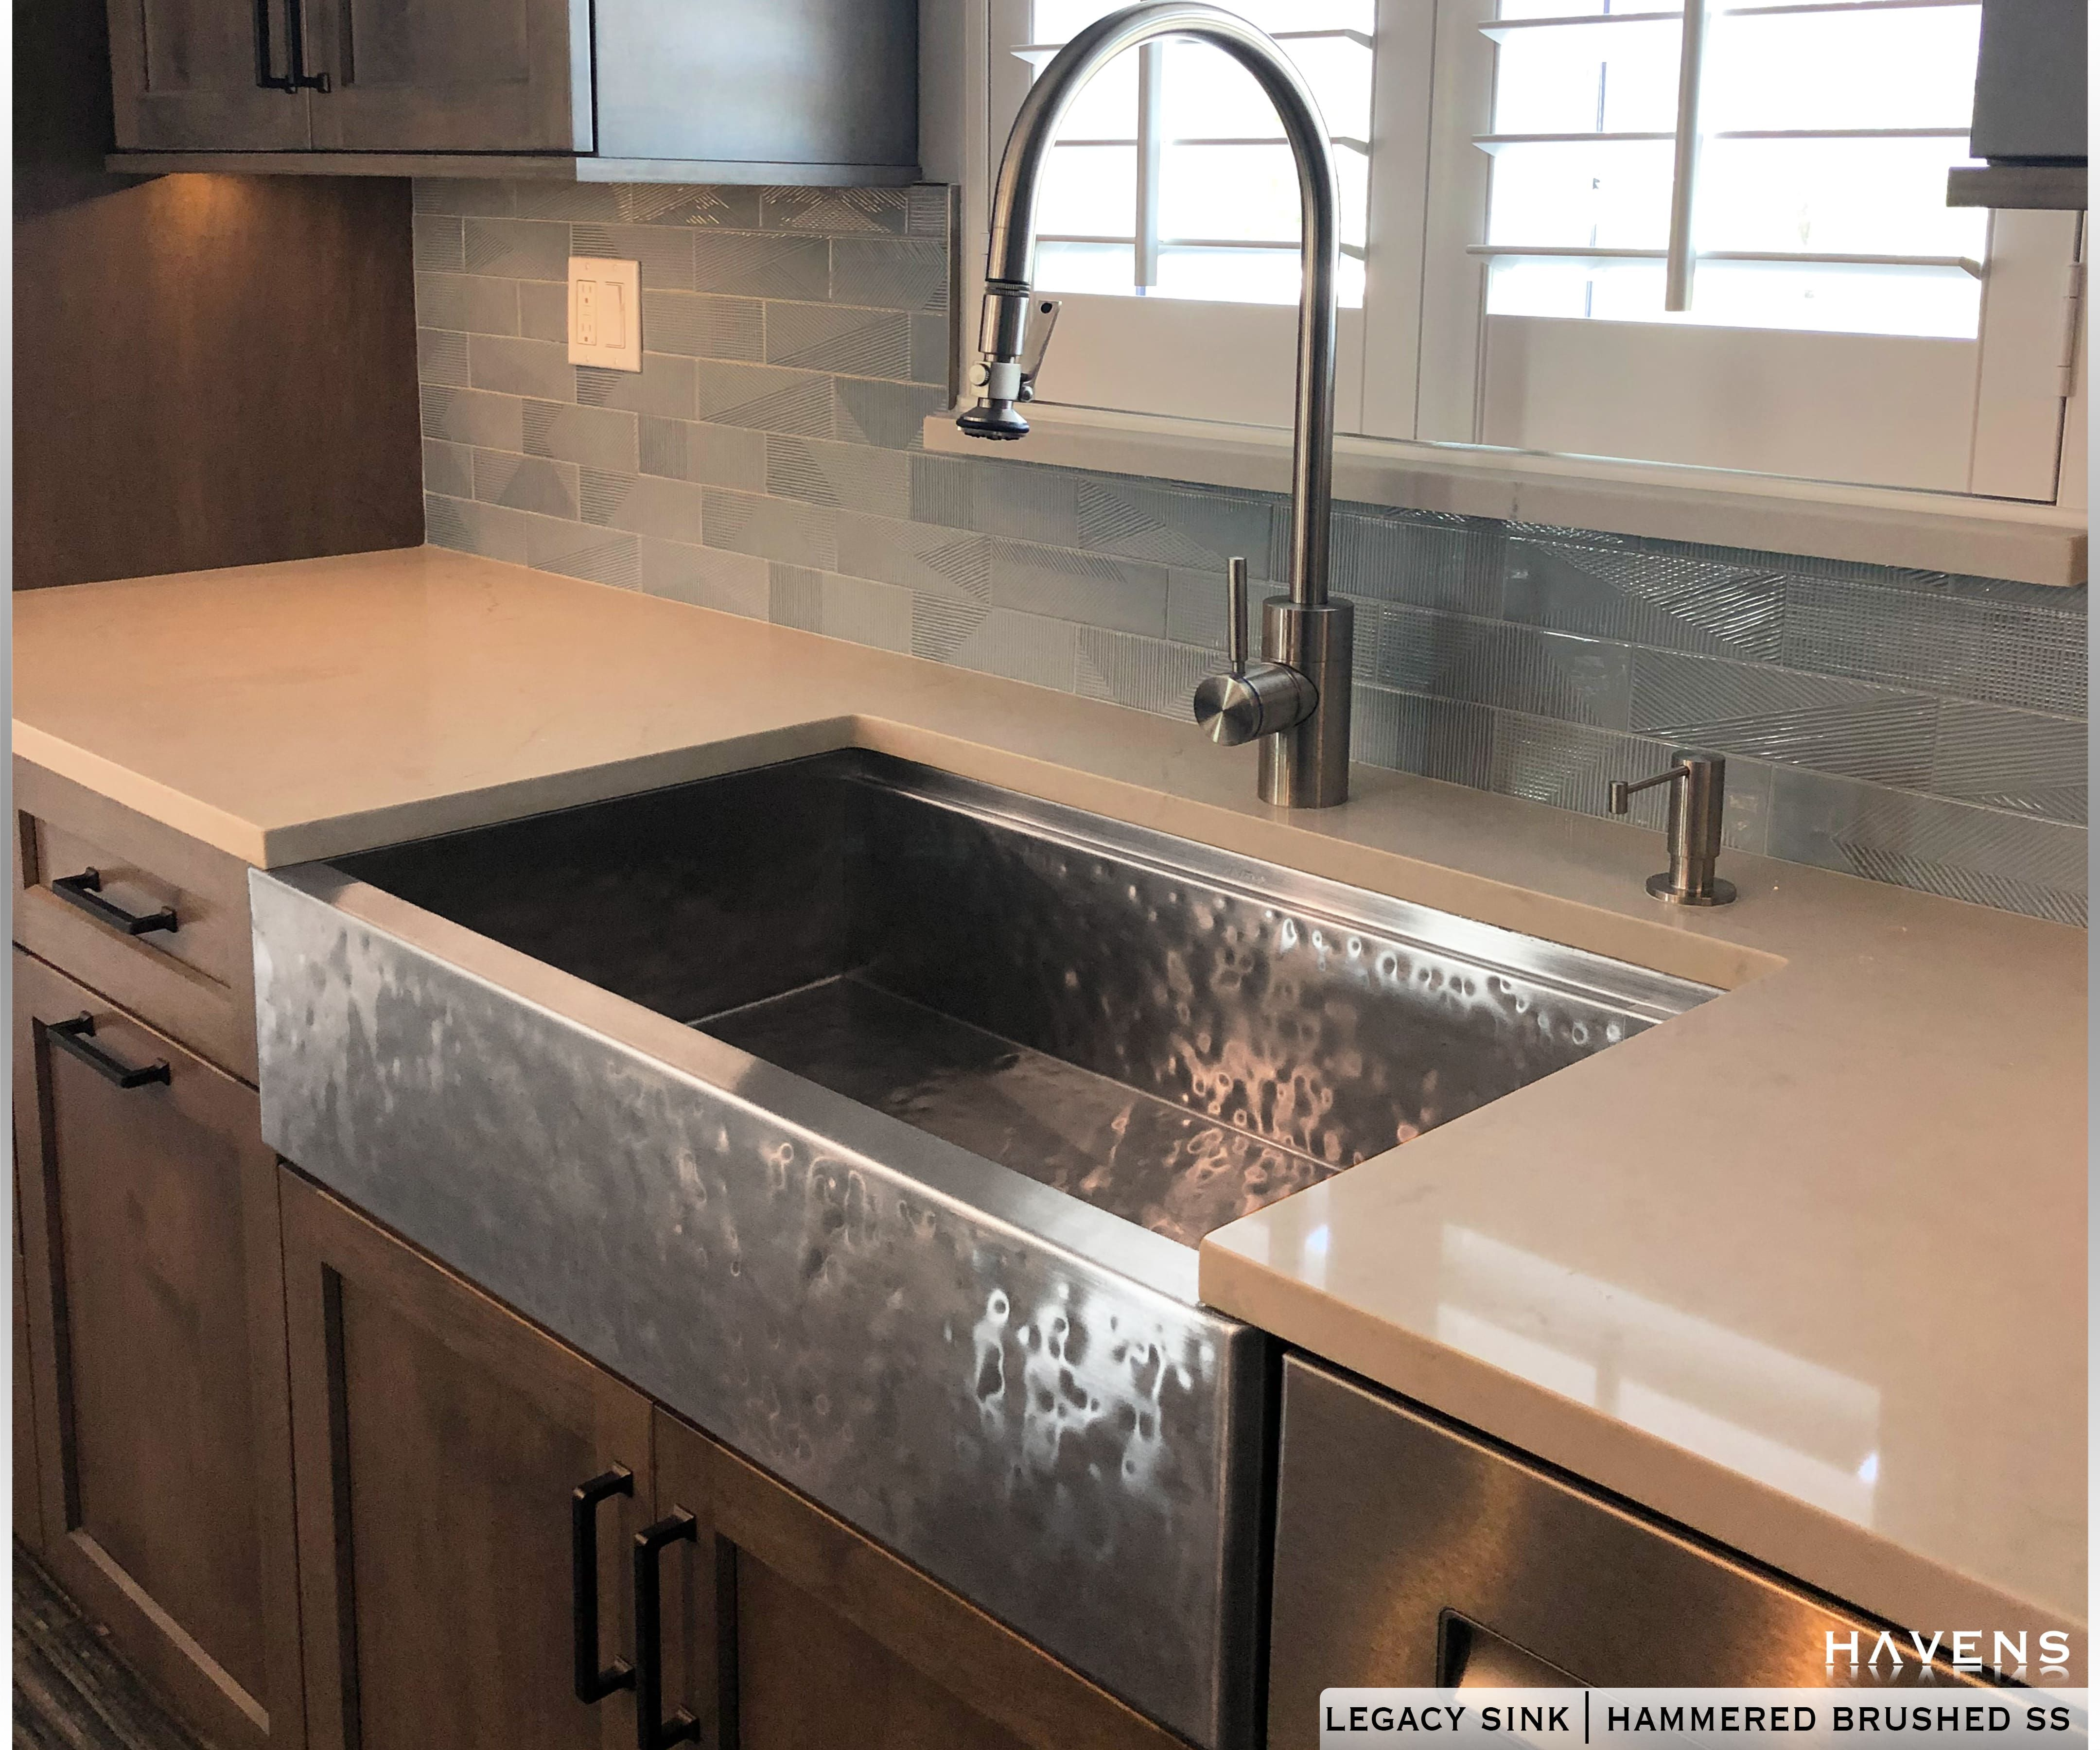 Hammered Stainless Steel Farmhouse Sink Havensmetal Com Havensgallery Com Stainless Farmhouse Sink Kitchen Sink Inspiration Stainless Steel Farmhouse Sink